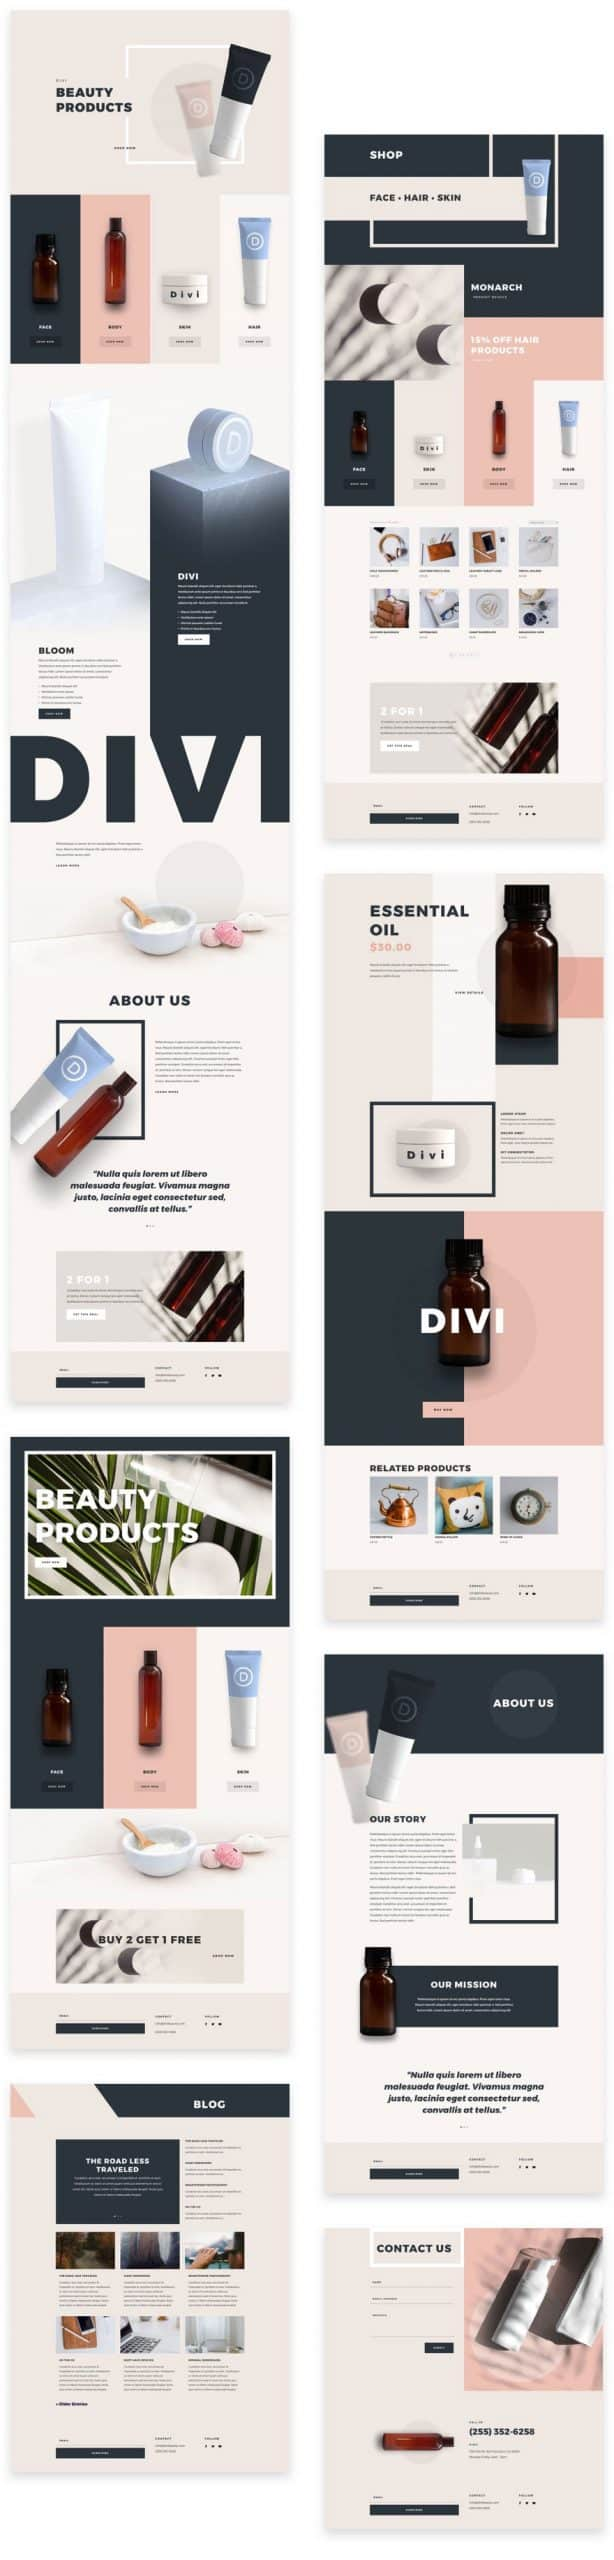 Beauty Products Layout pack